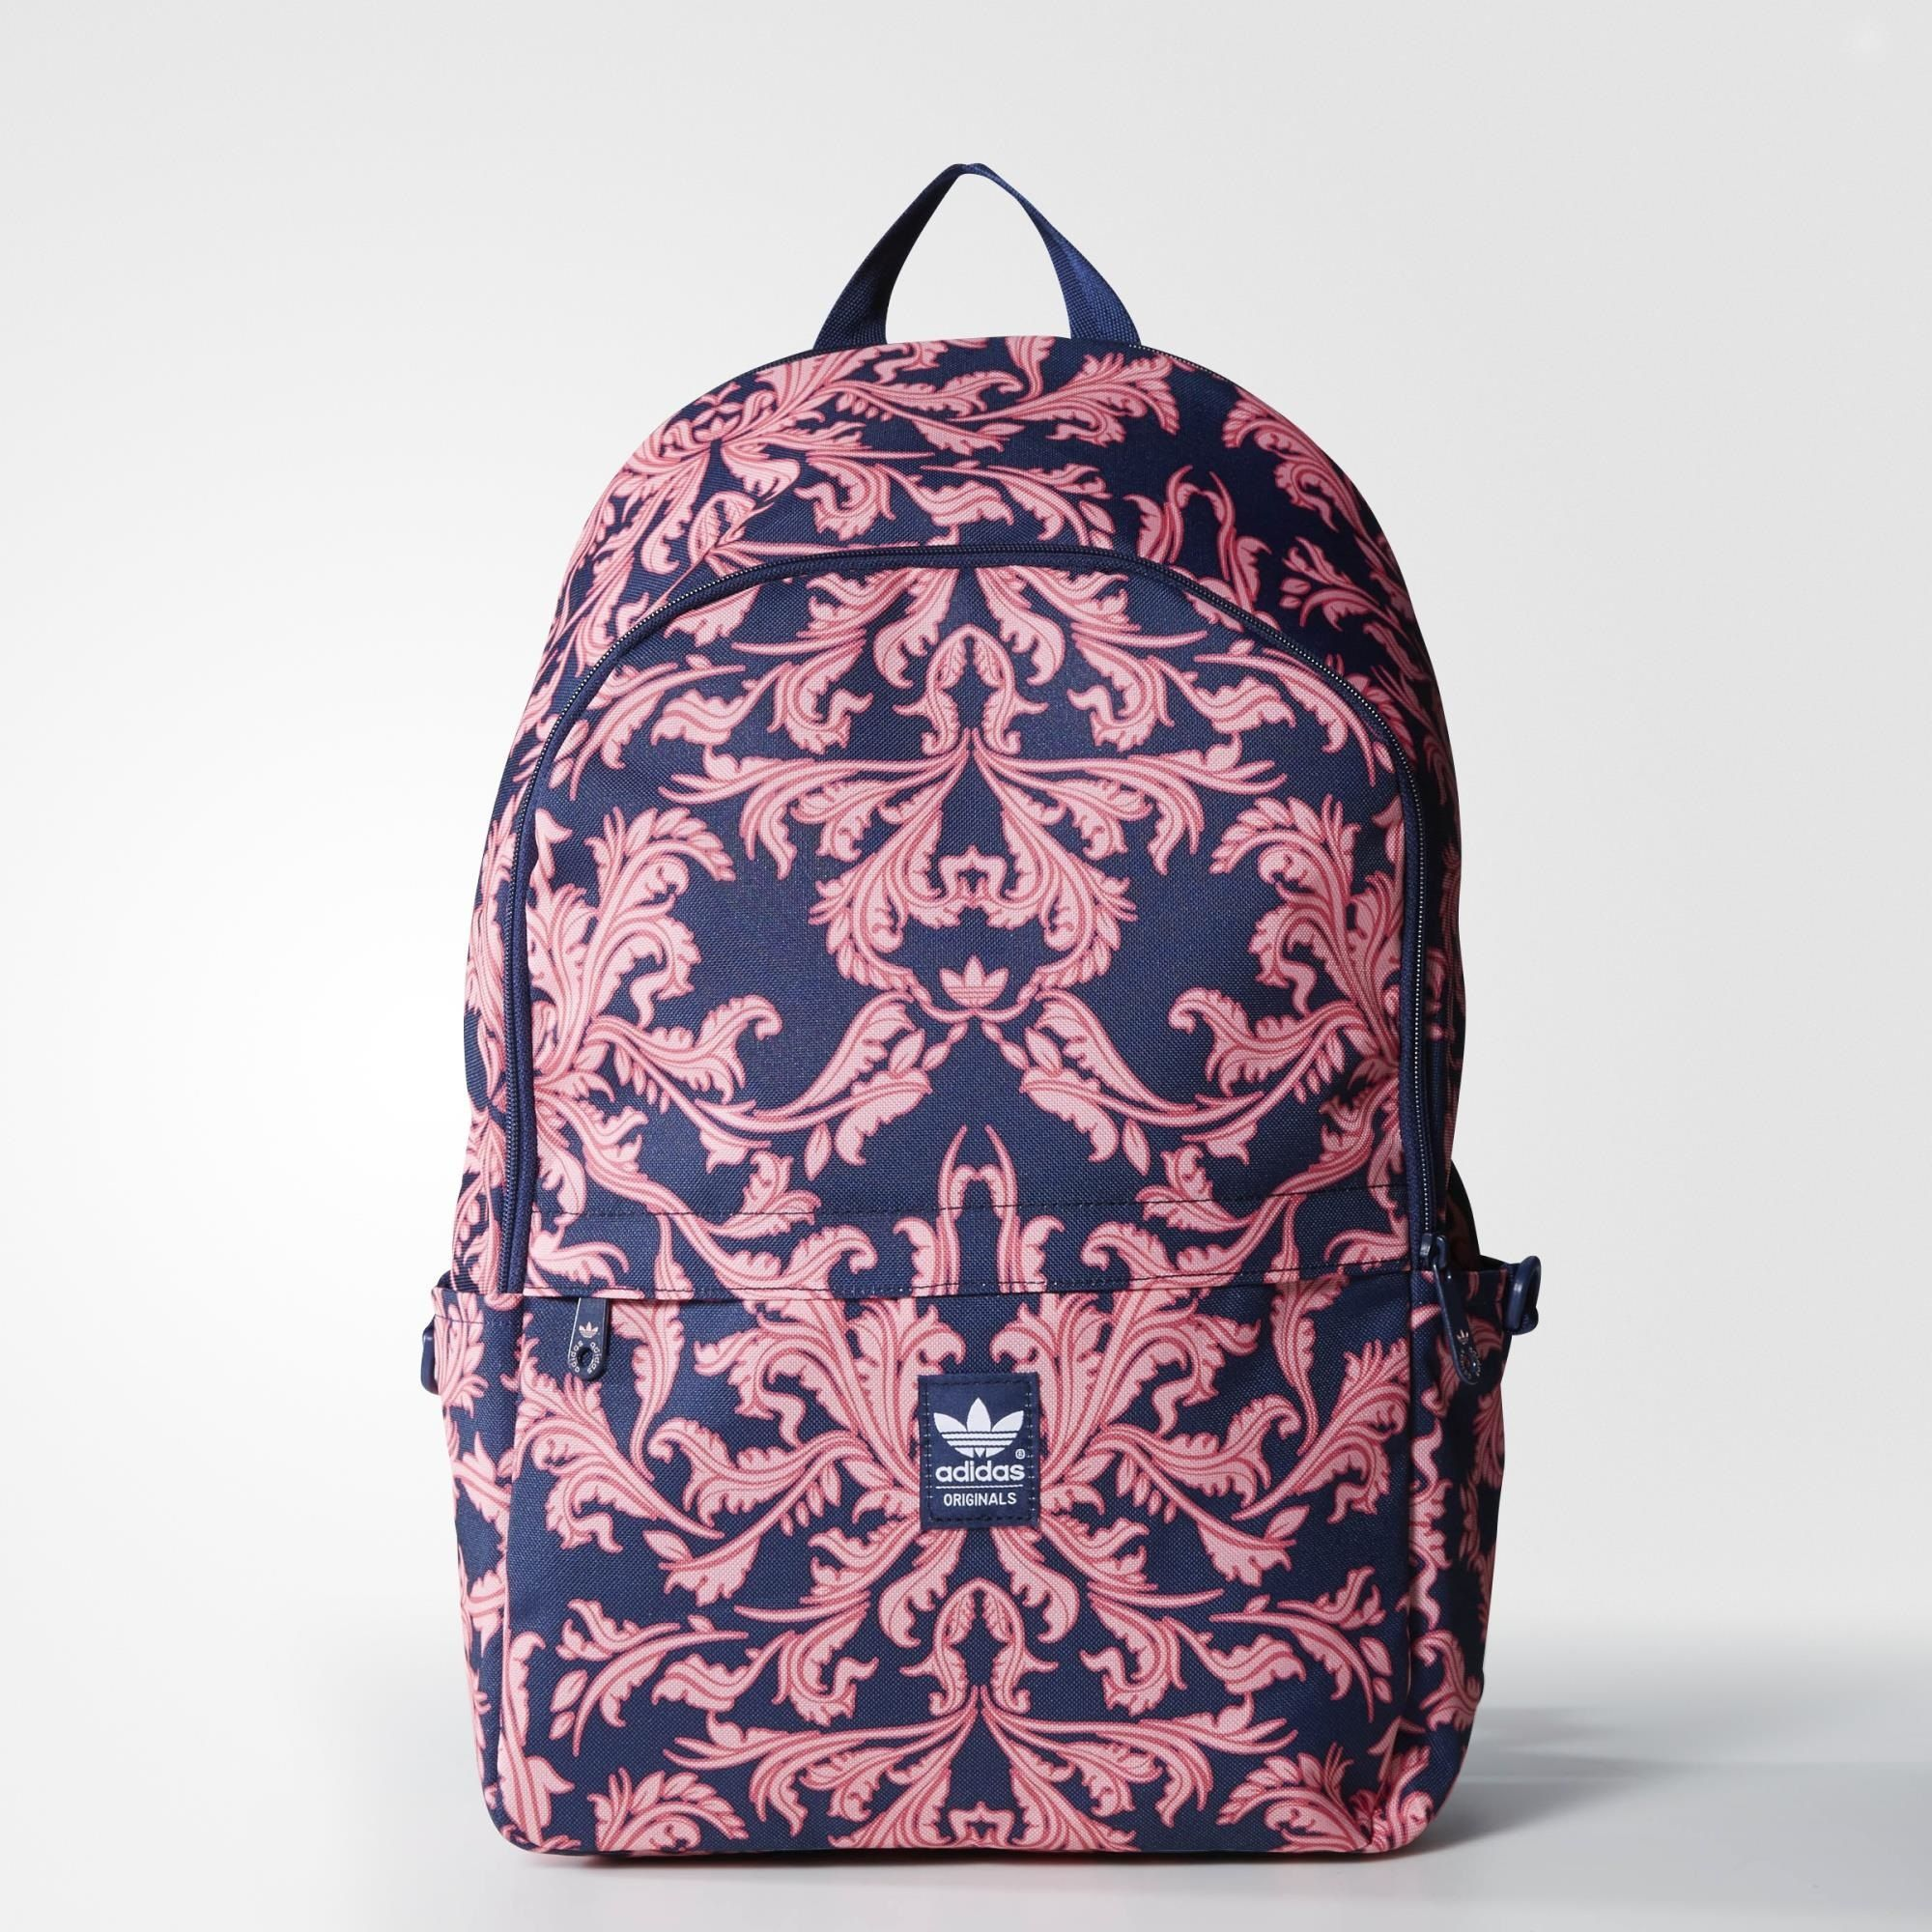 adidas backpack wish list 2015 pinterest adidas backpack